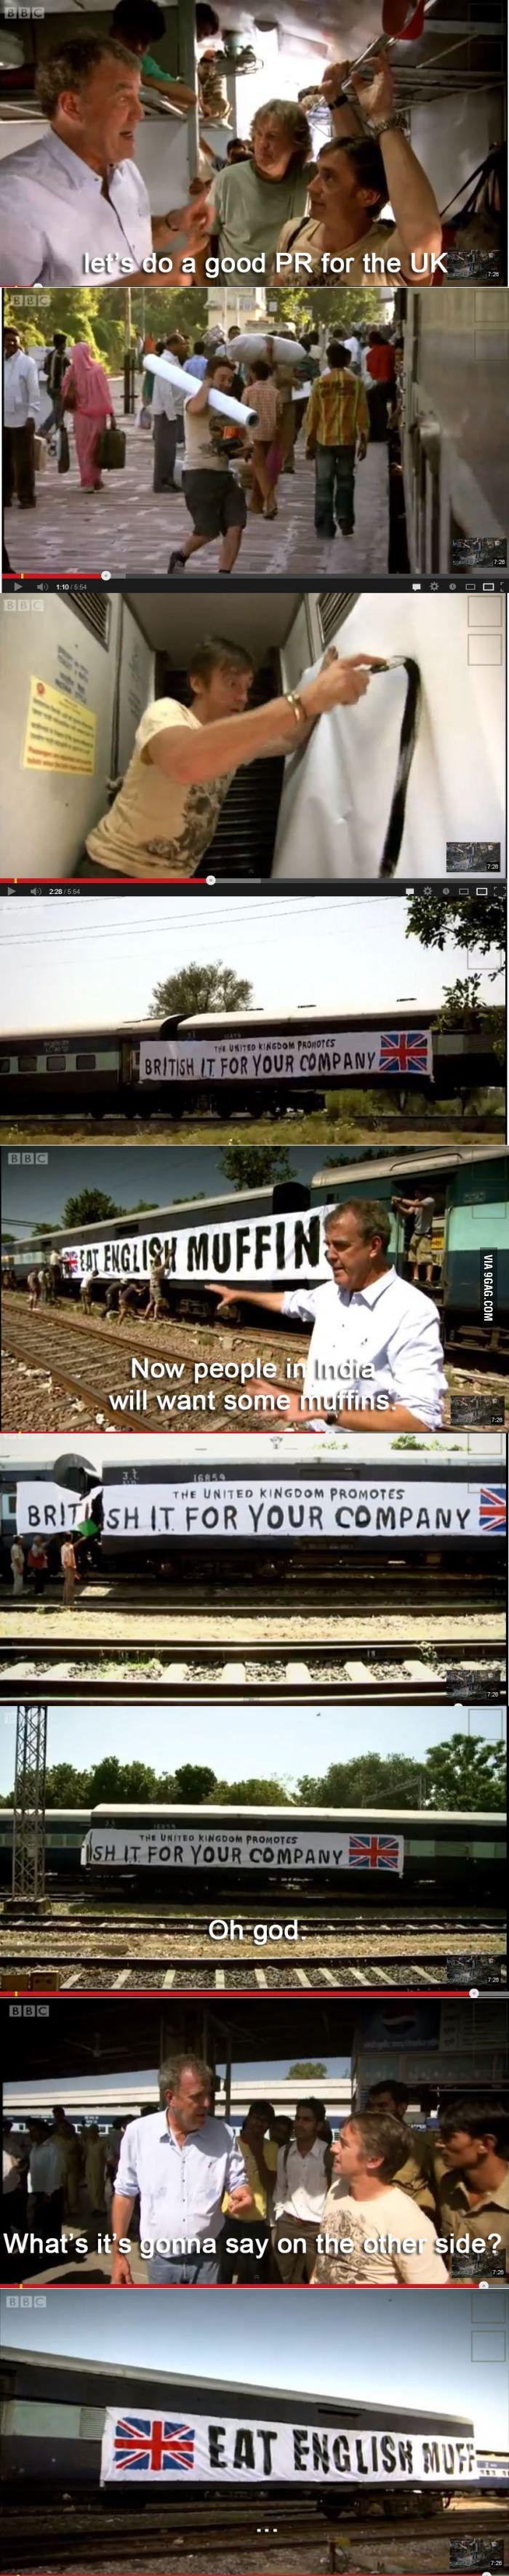 Don't let Top Gear makes advertising.